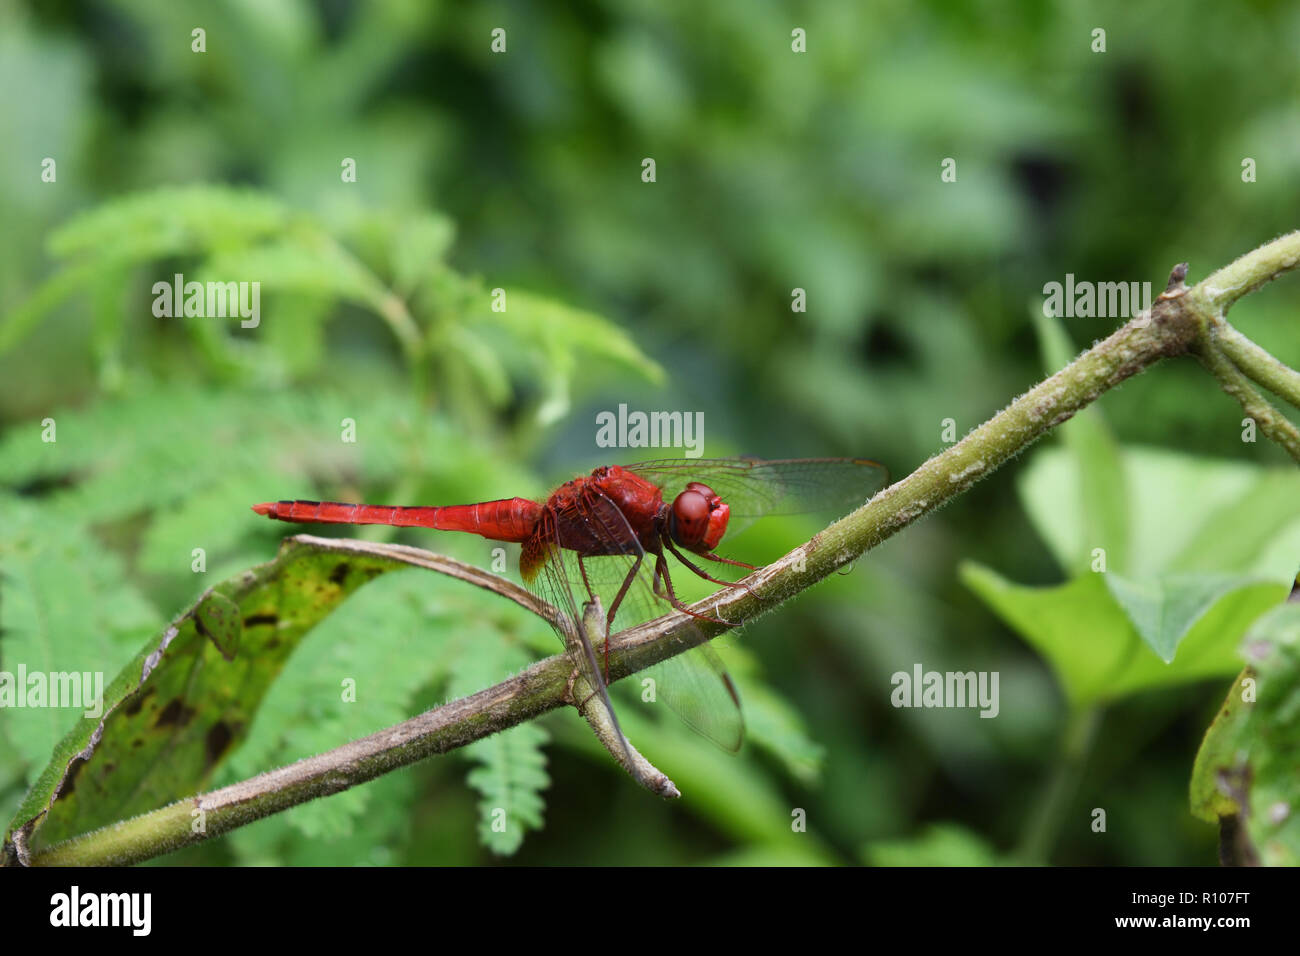 Scarlet skimmer or Crimson darter , Red Dragonfly on a branch with natural green background Stock Photo